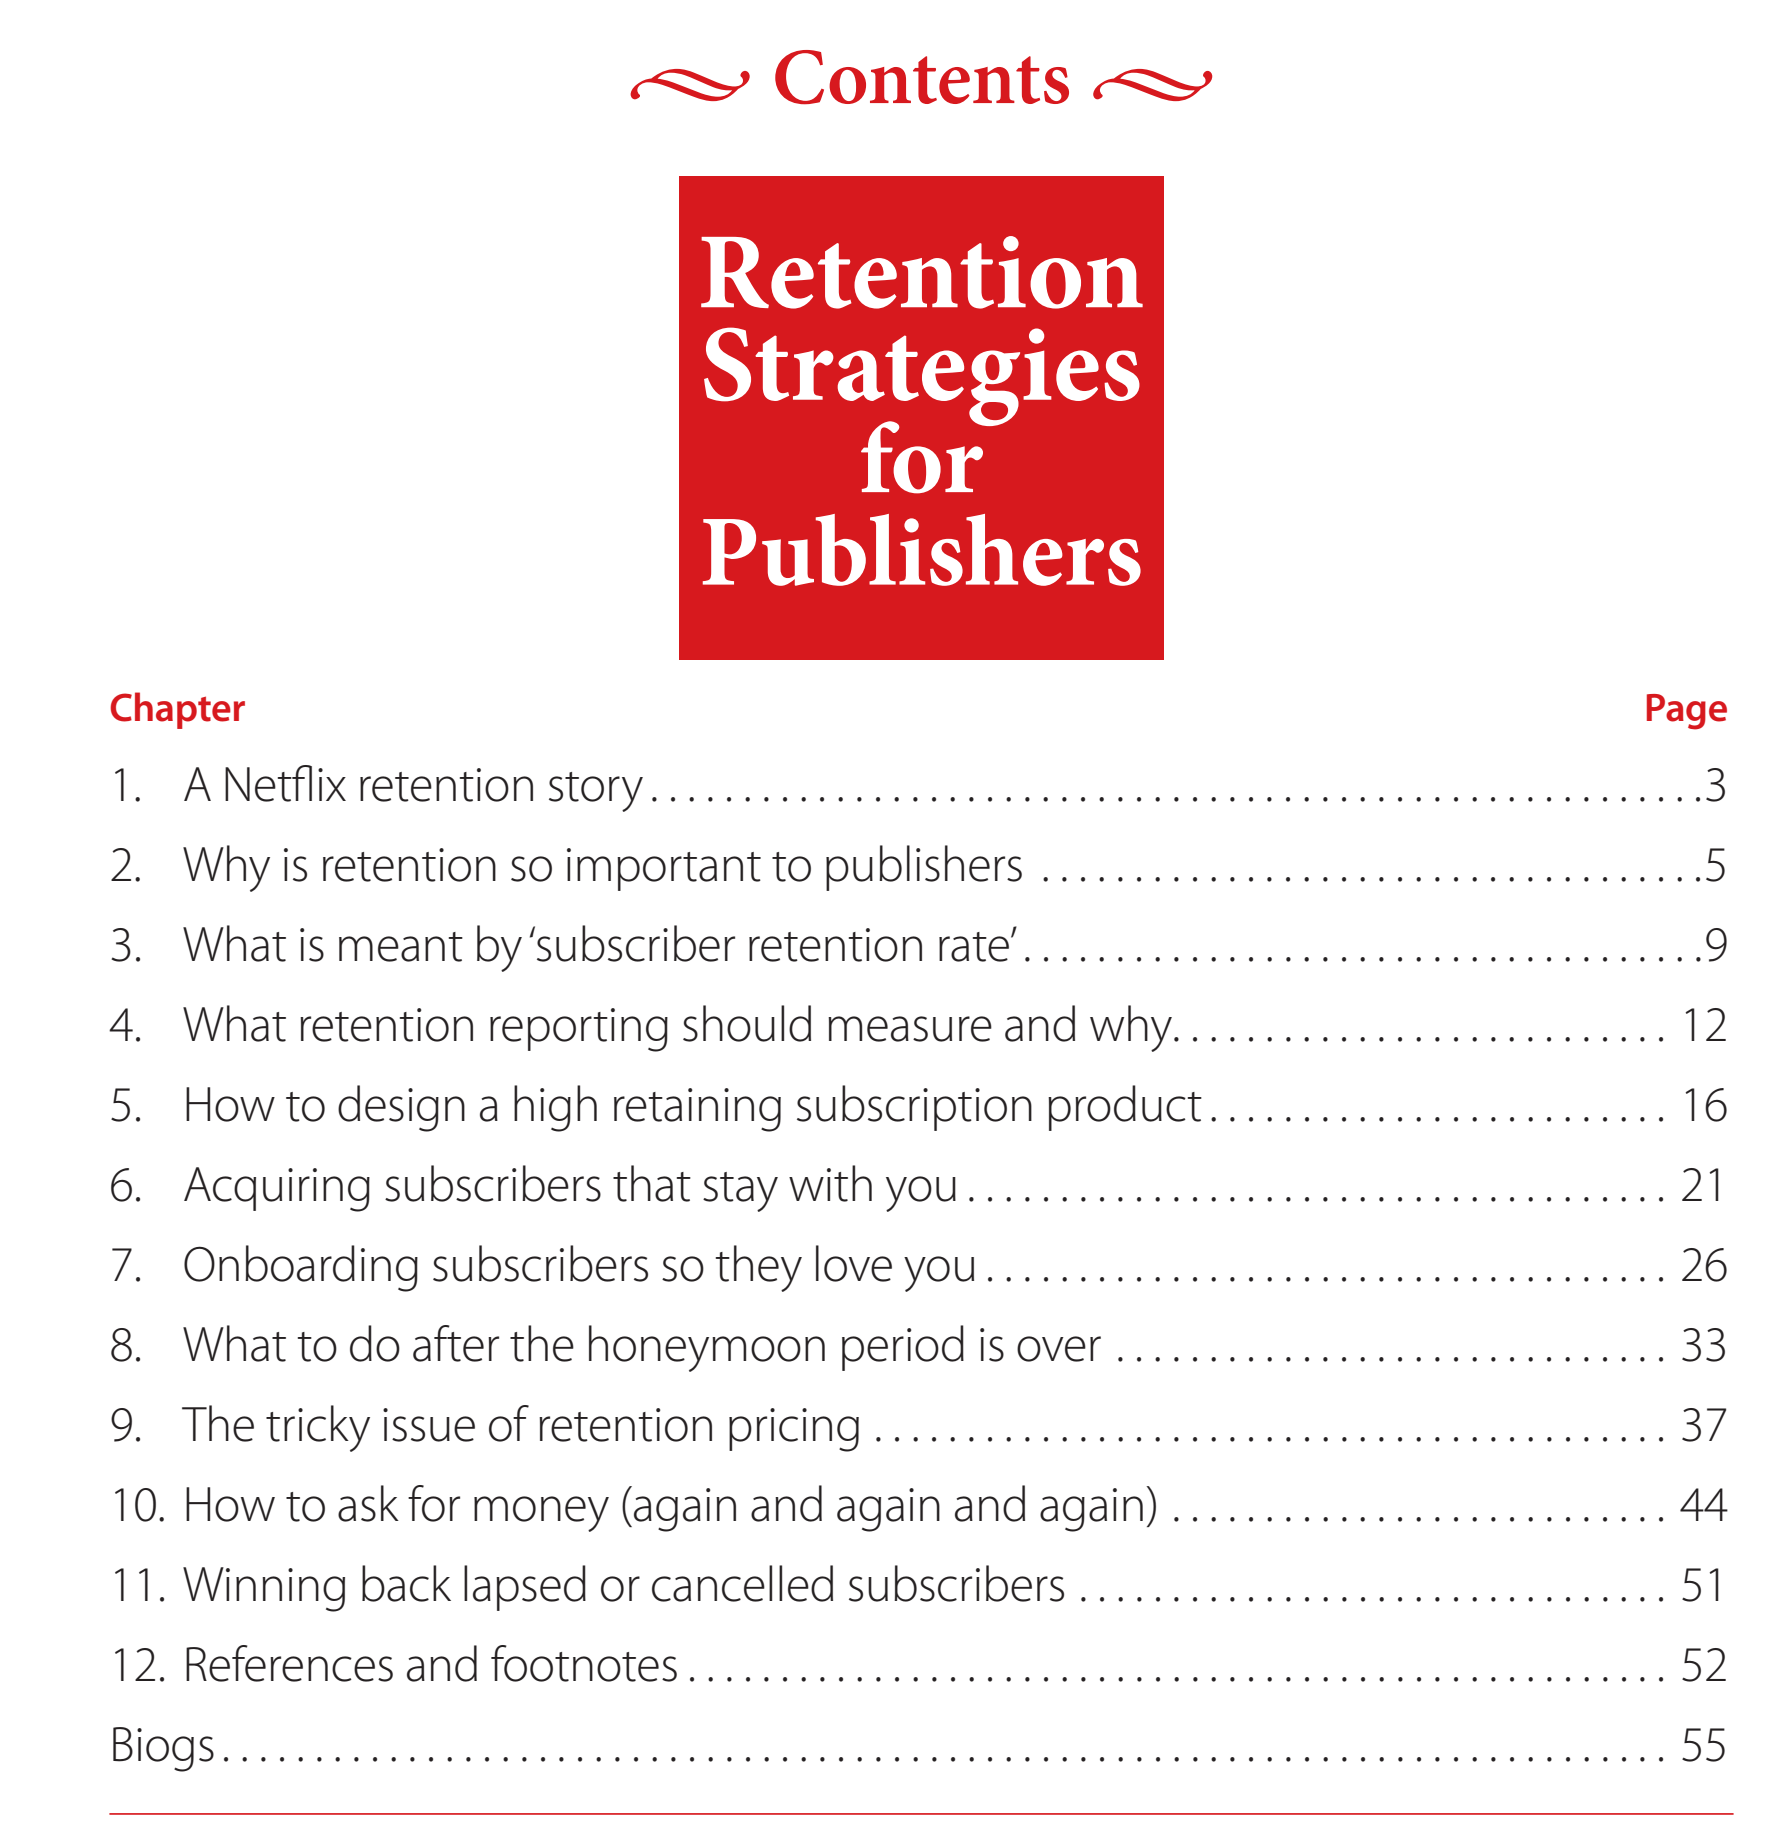 The contents page of the InPublishing Guide to Retention Strategies for Publishers. Click to expand.